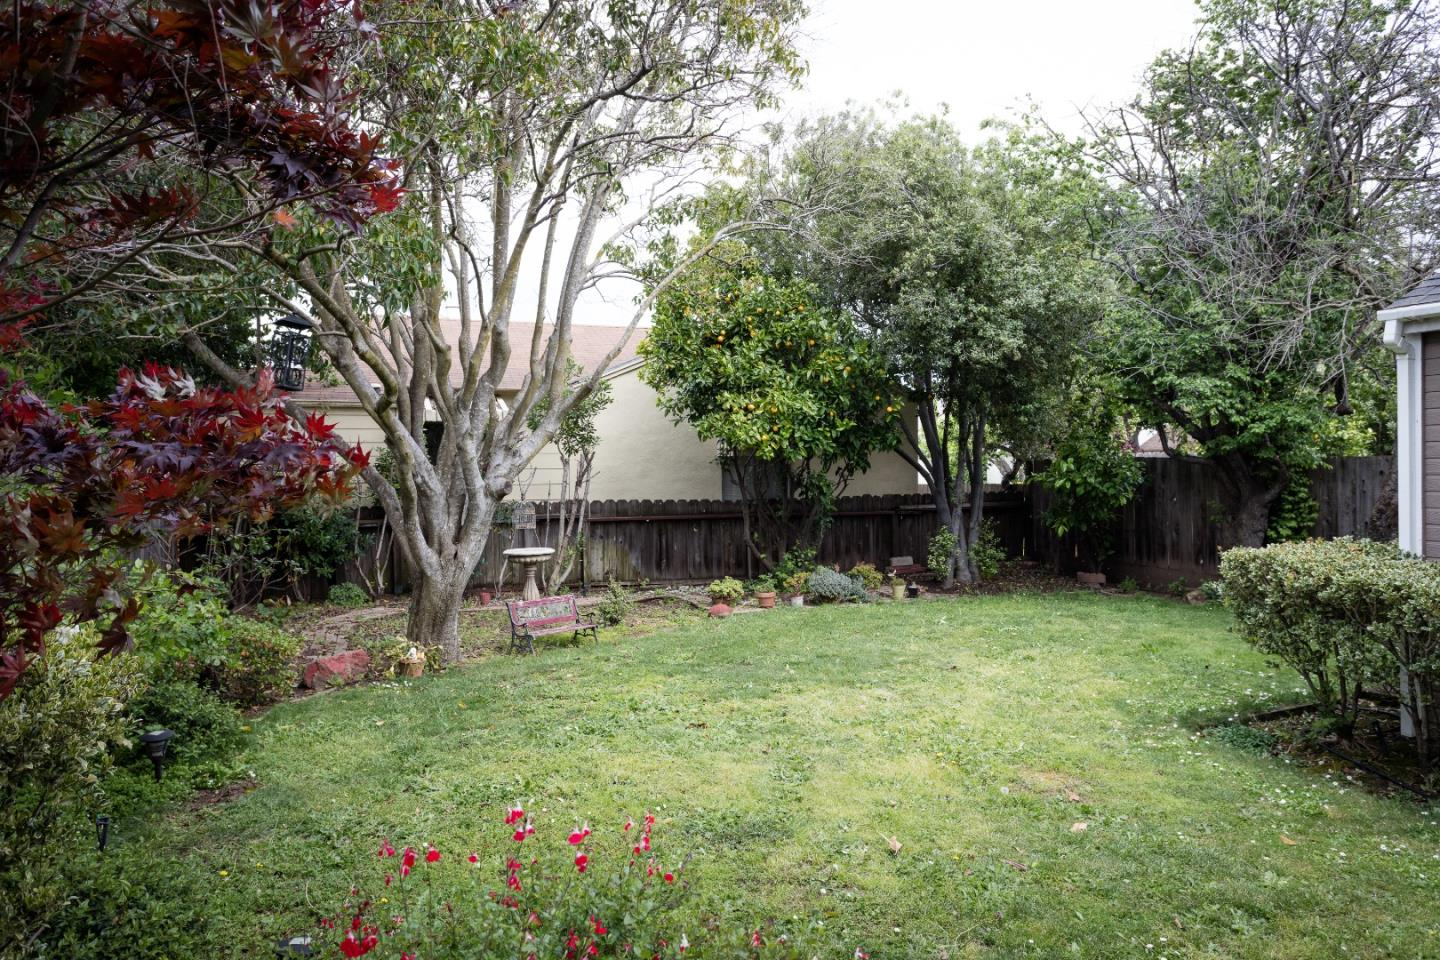 Additional photo for property listing at 607 S Fremont St  SAN MATEO, CALIFORNIA 94402